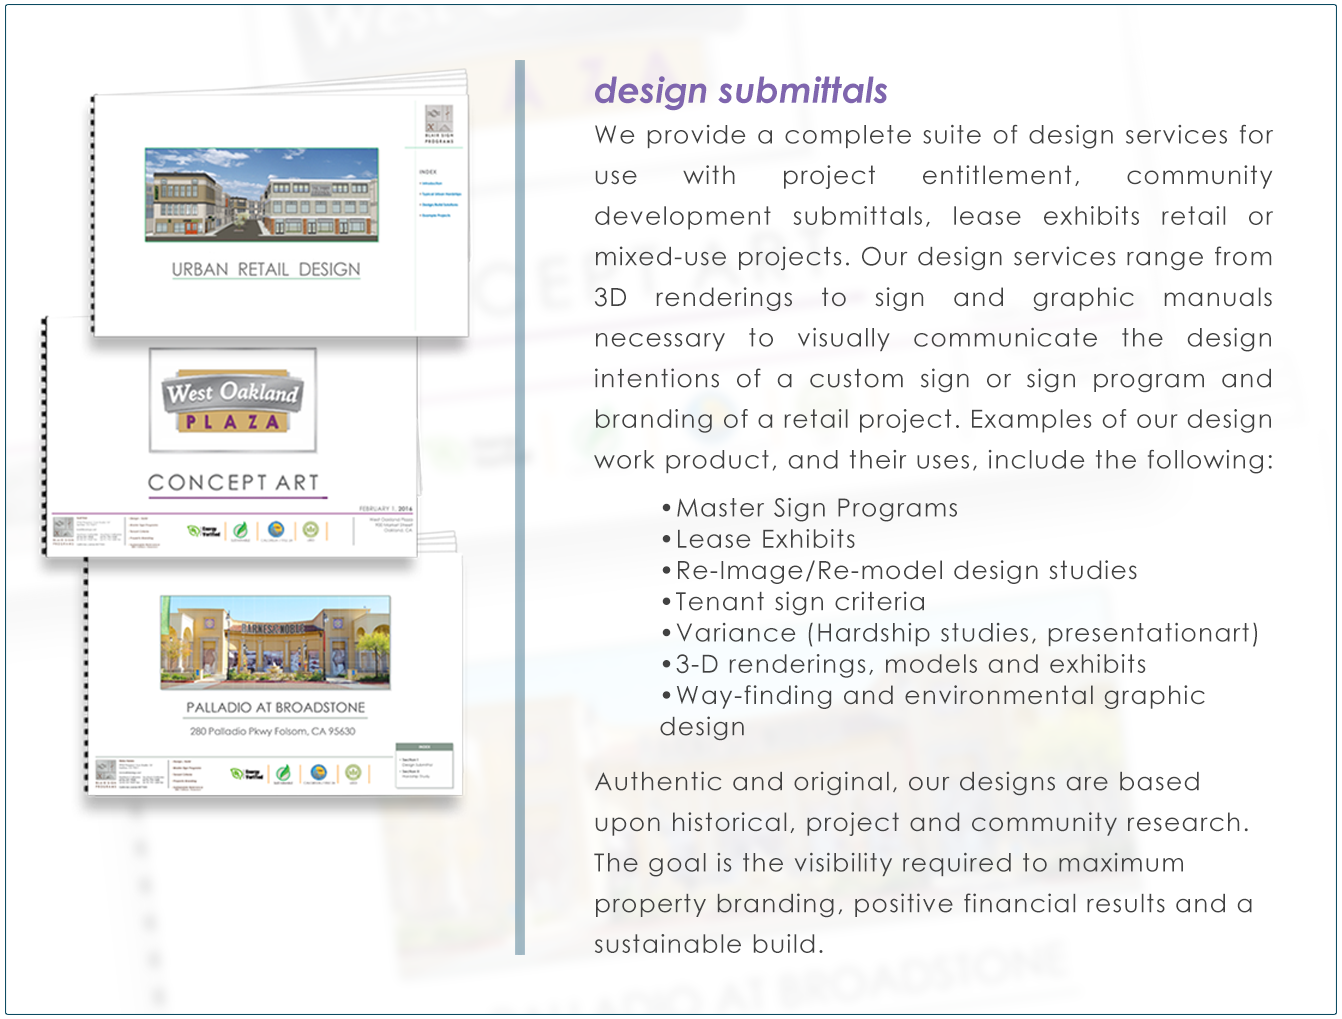 DESIGN2-design submittals